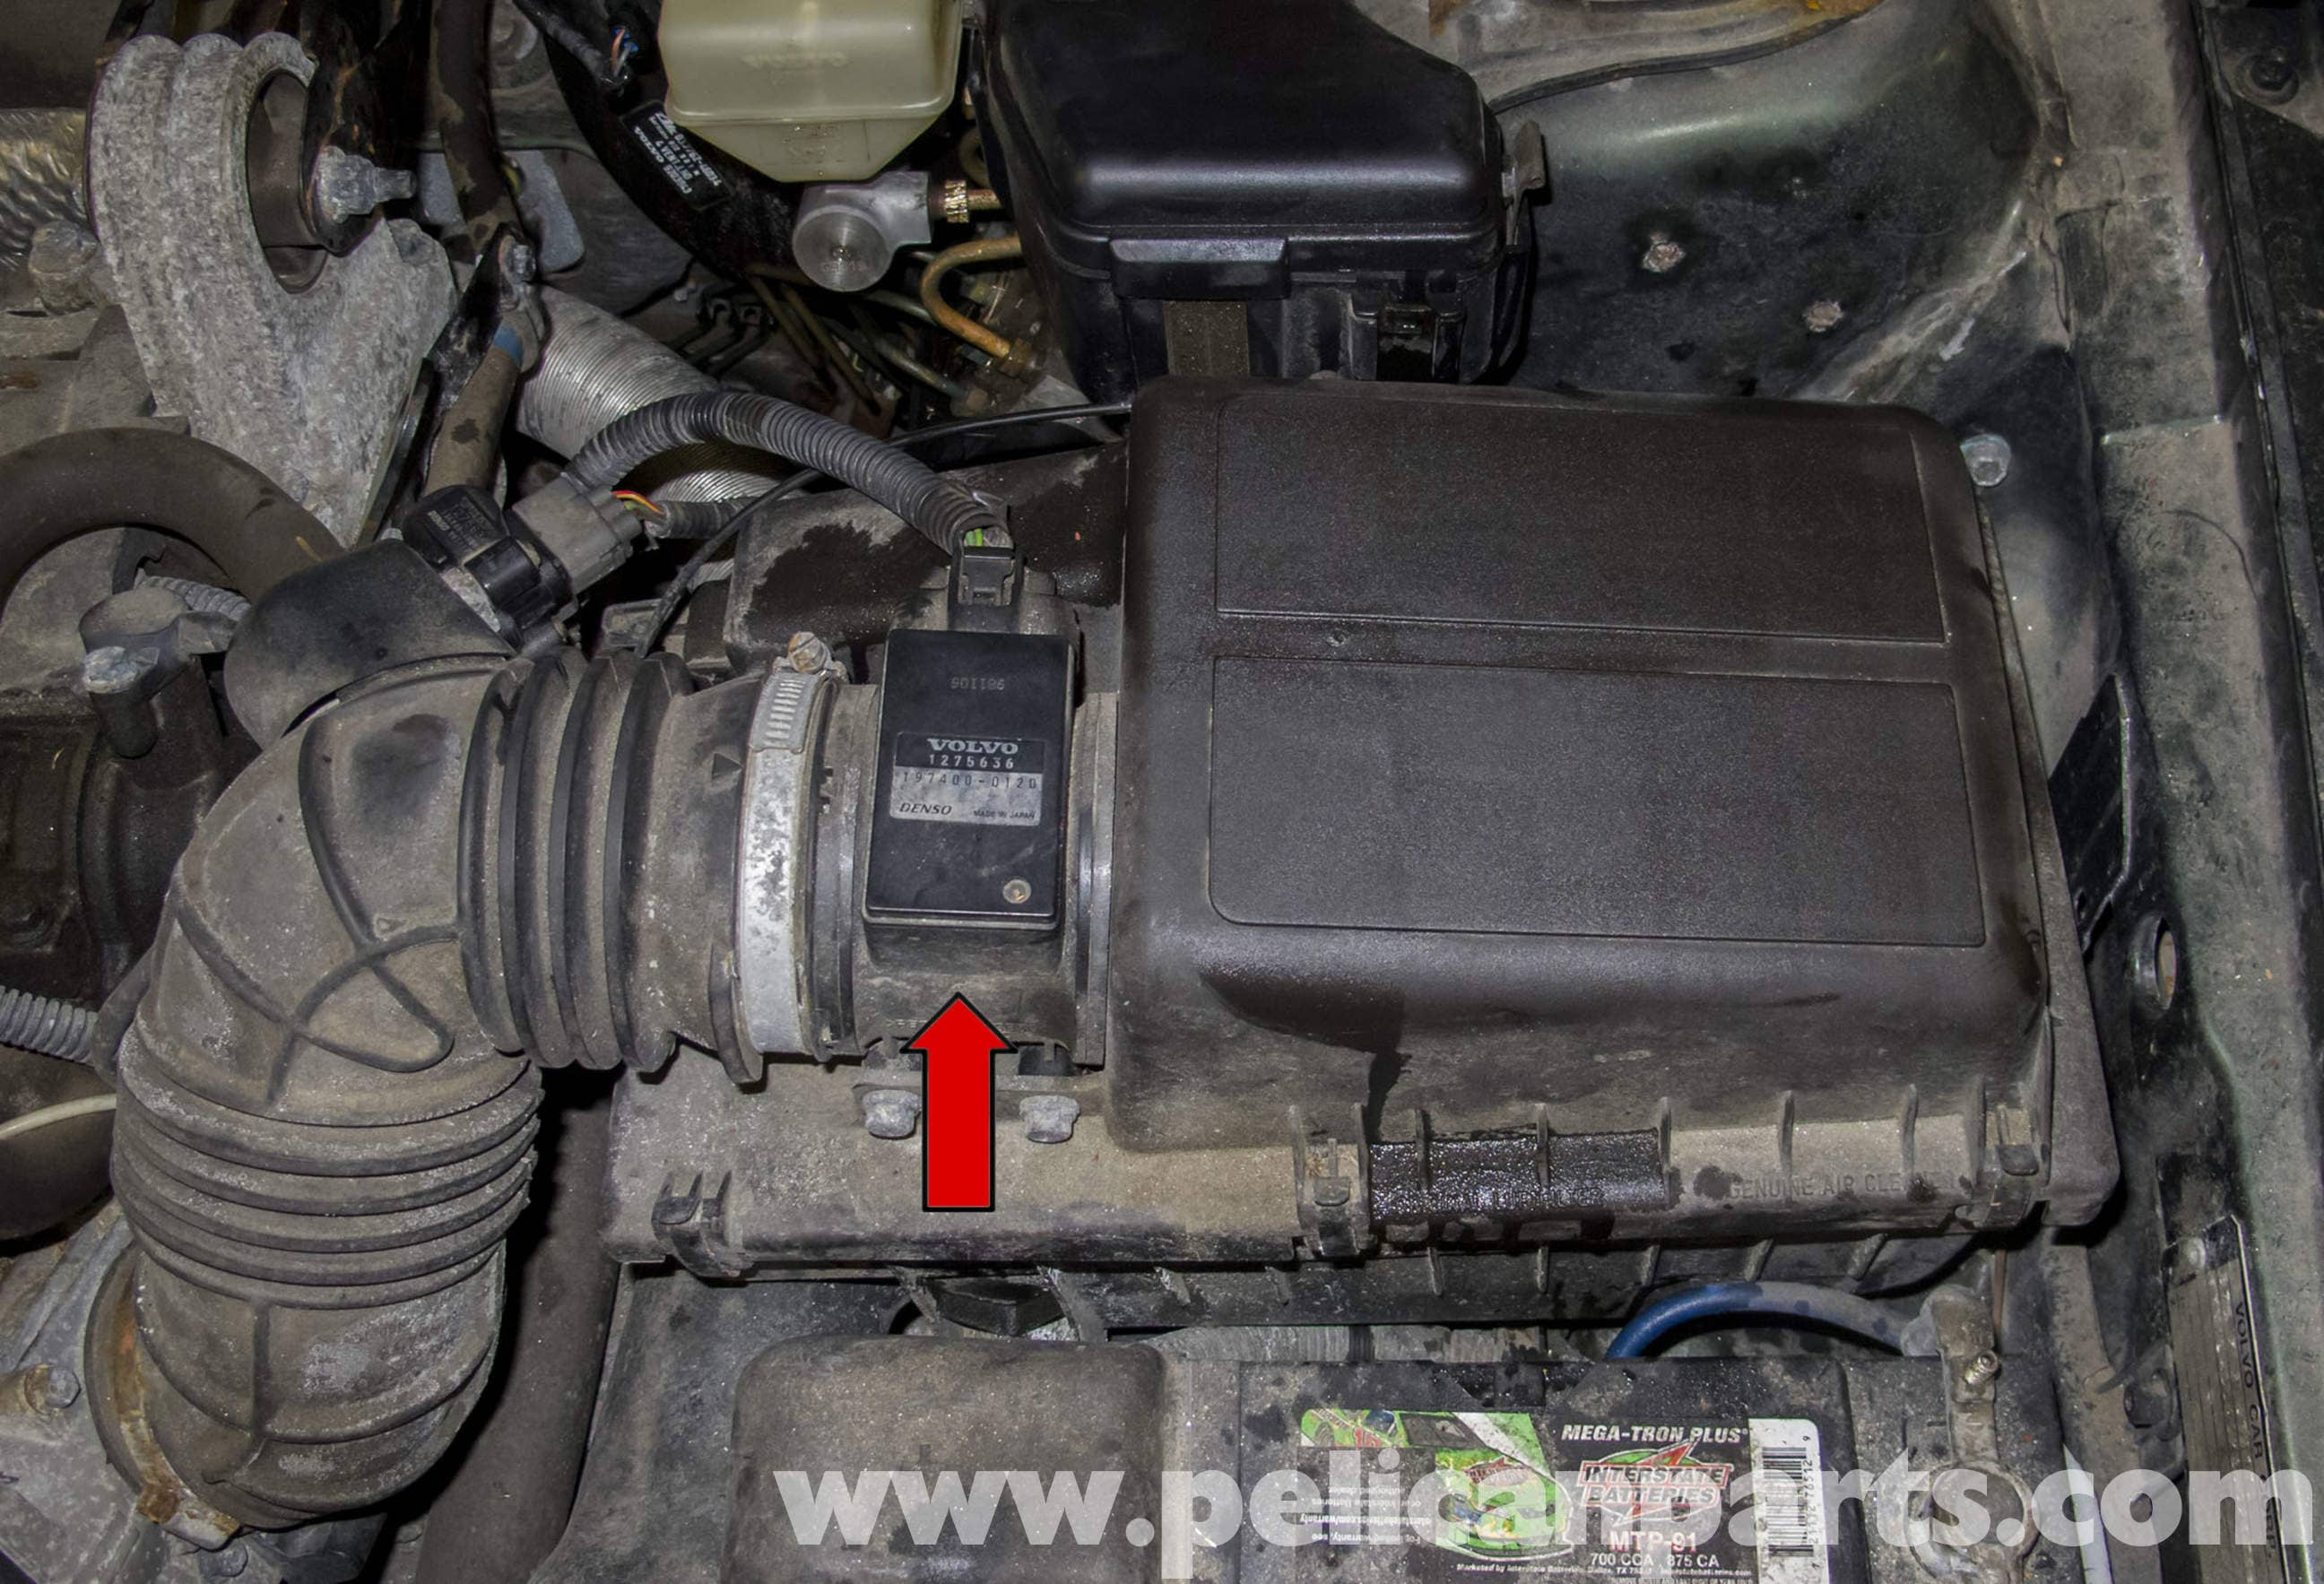 Engine Intake Diagram Auto Electrical Wiring Blower Unit Denso Jeep Cj7 Volvo V70 Management Systems 1998 2007